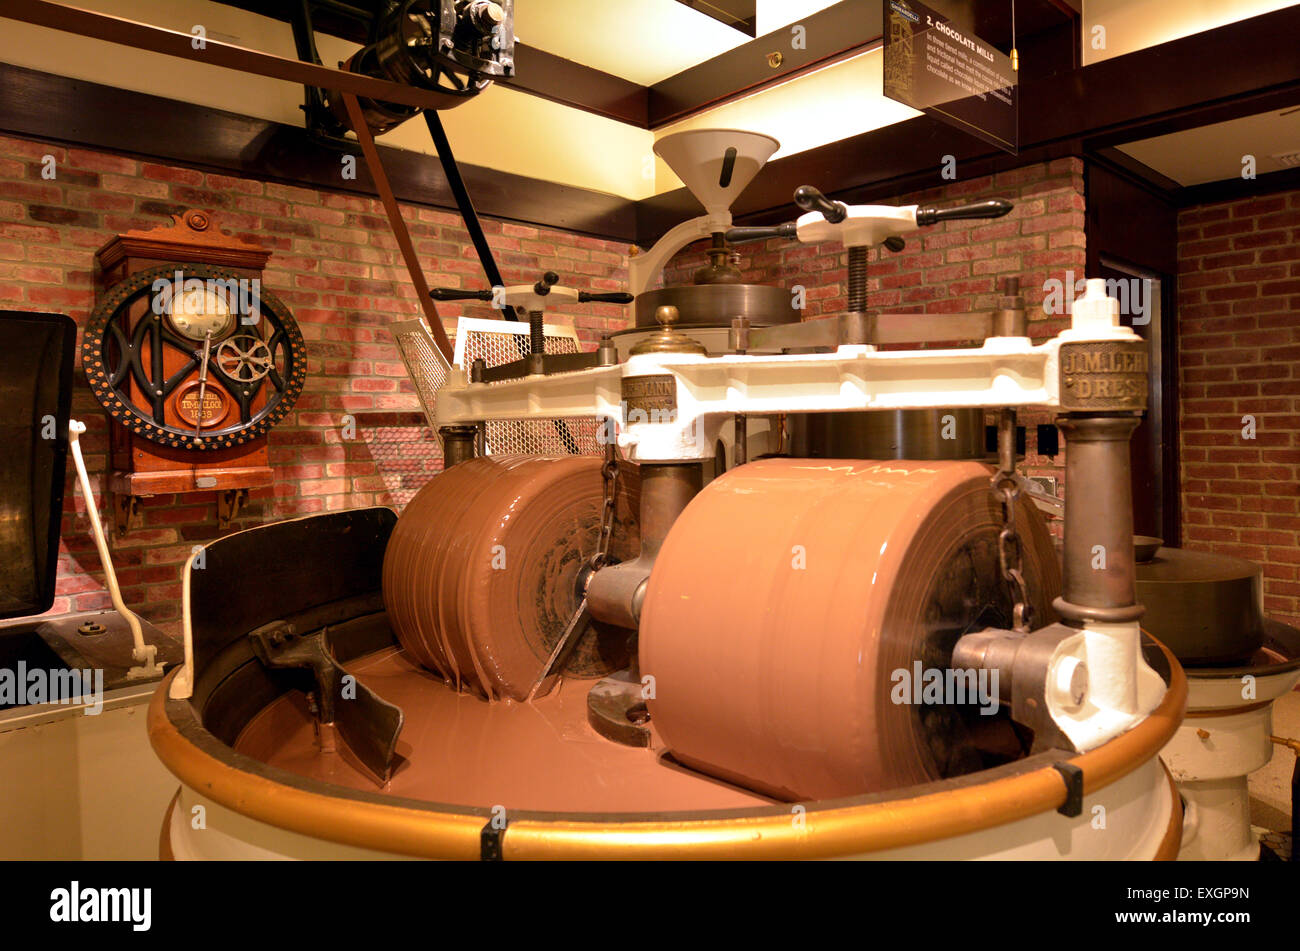 SAN FRANCISCO - MAY 17 2015:Chocolate manufacturing process in ...